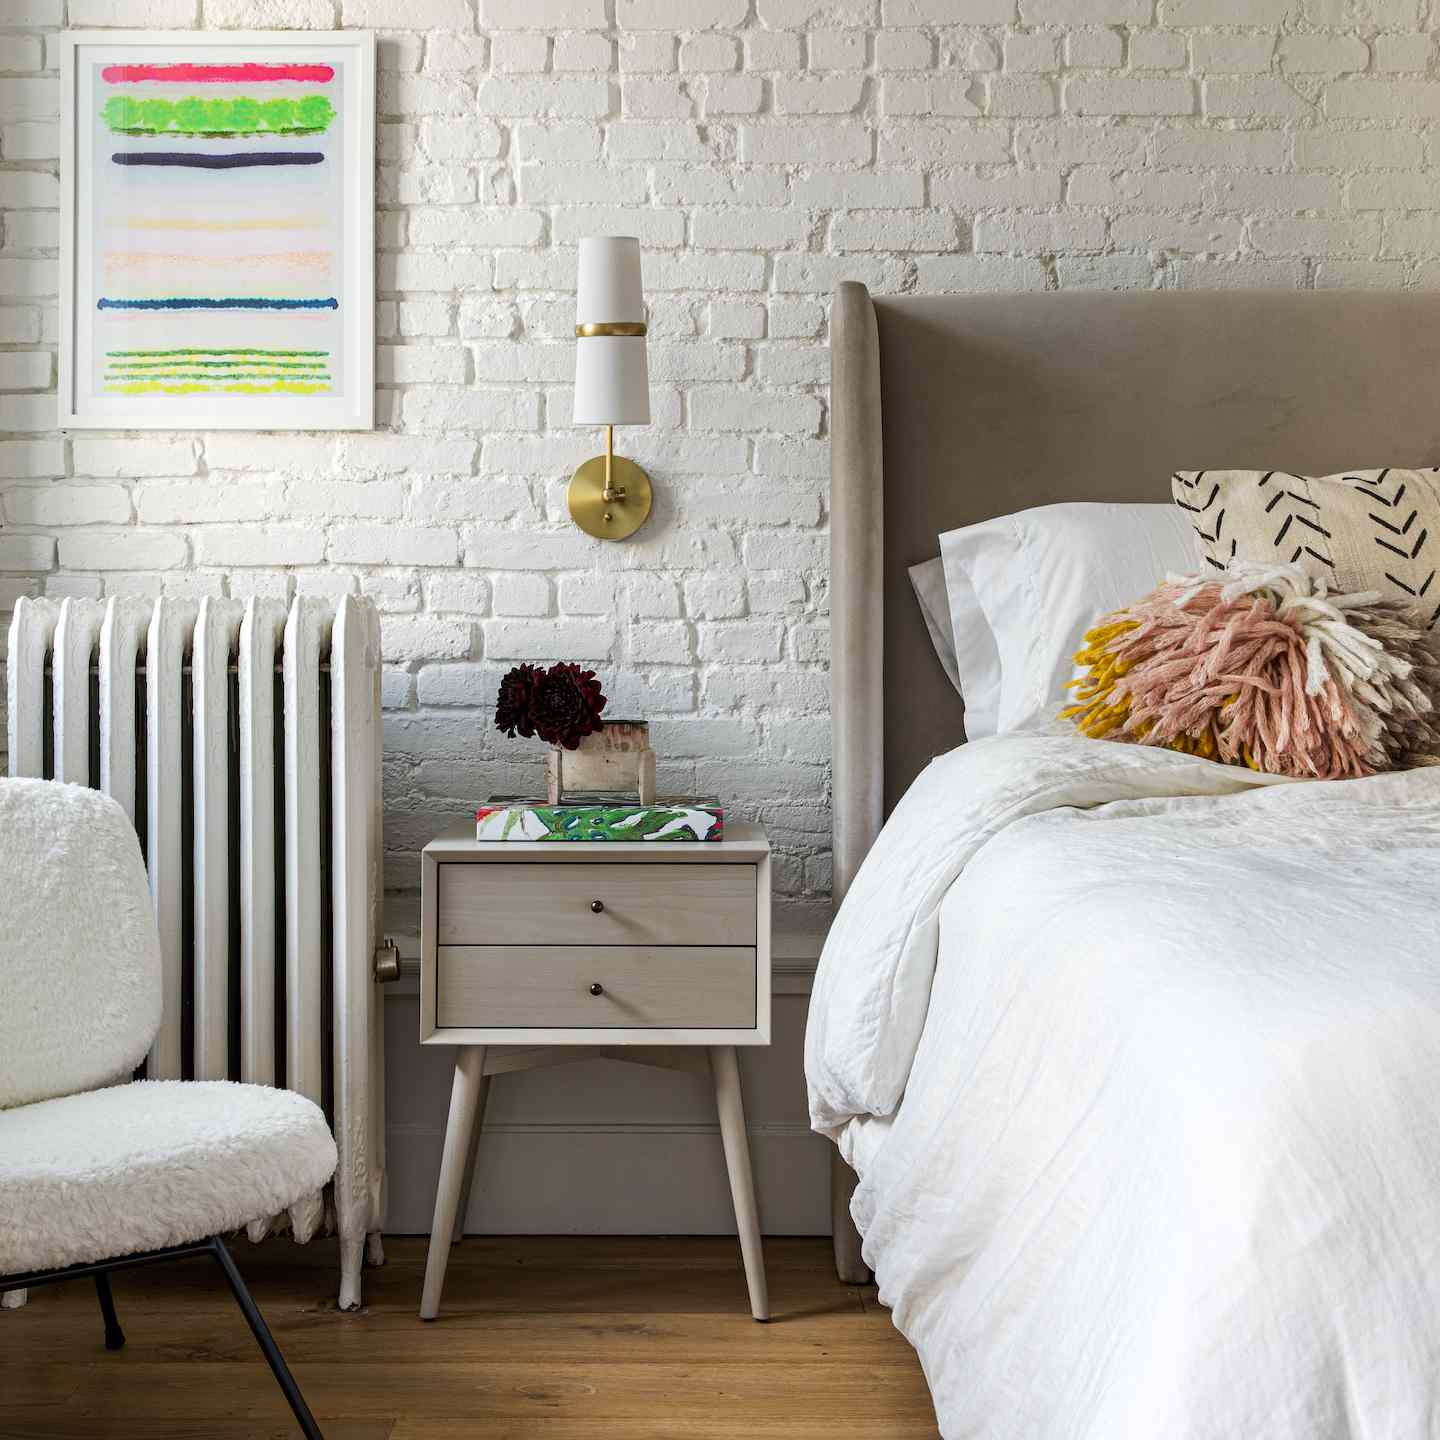 White bed against a white brick wall.